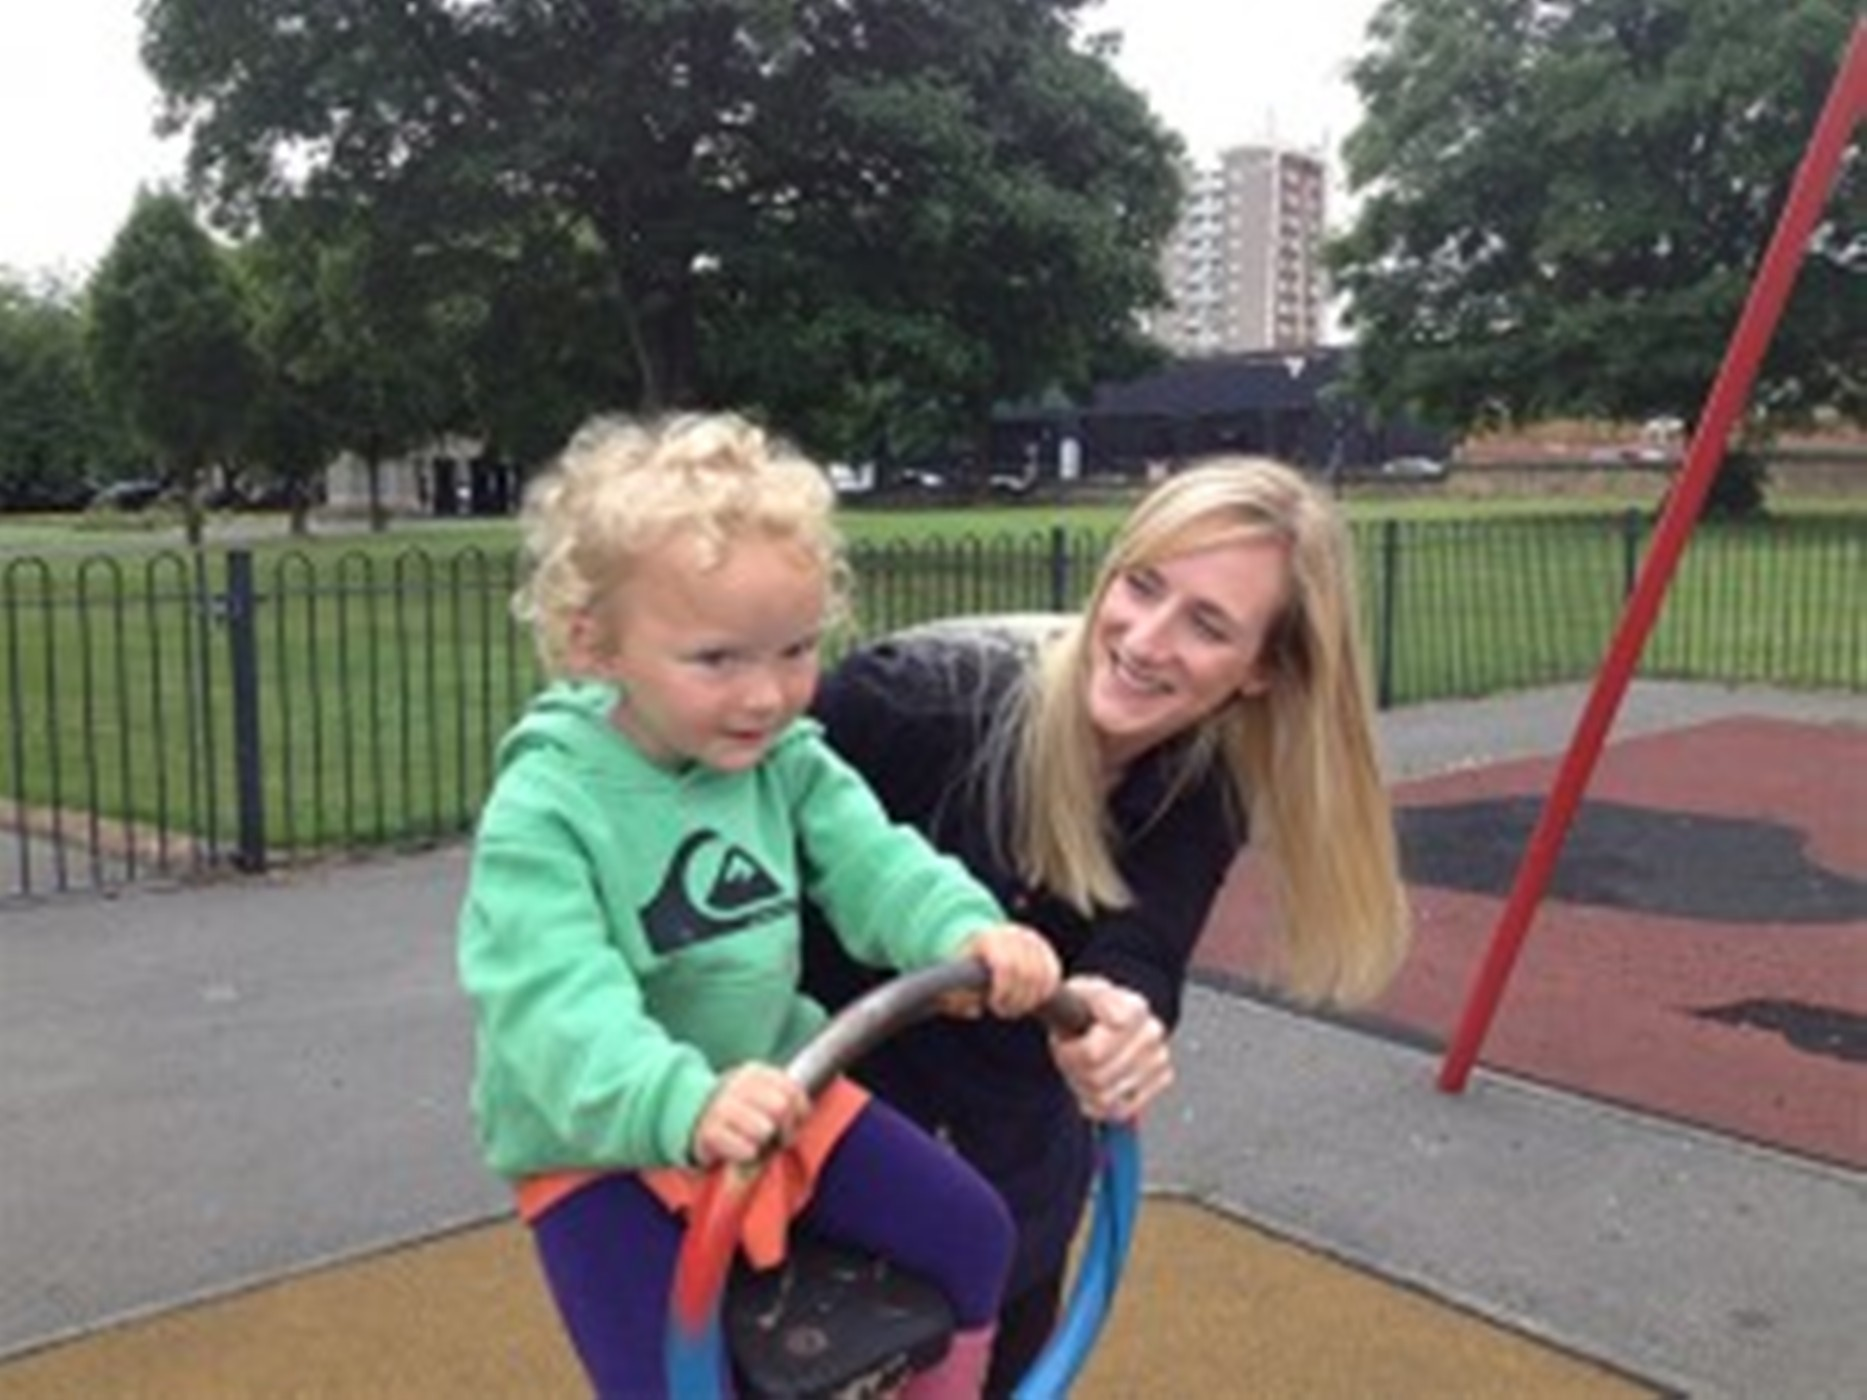 mother with toddler in playground, both smiling